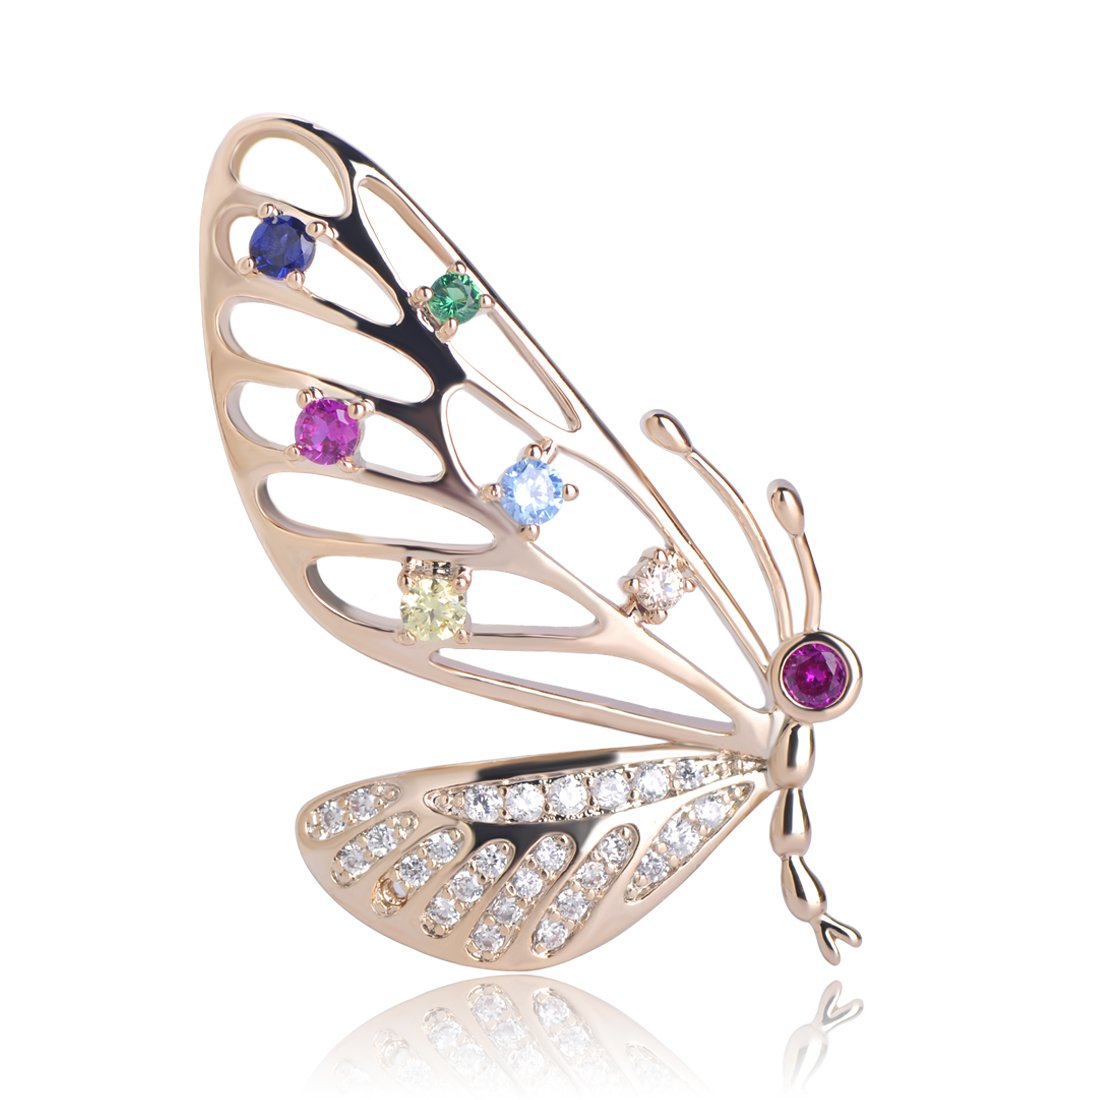 MECHOSEN Colorful Zircon Butterfly Shape Copper Brooches Jewelry For Women Girls Scarf Pins Suit Collar Clip Accessories